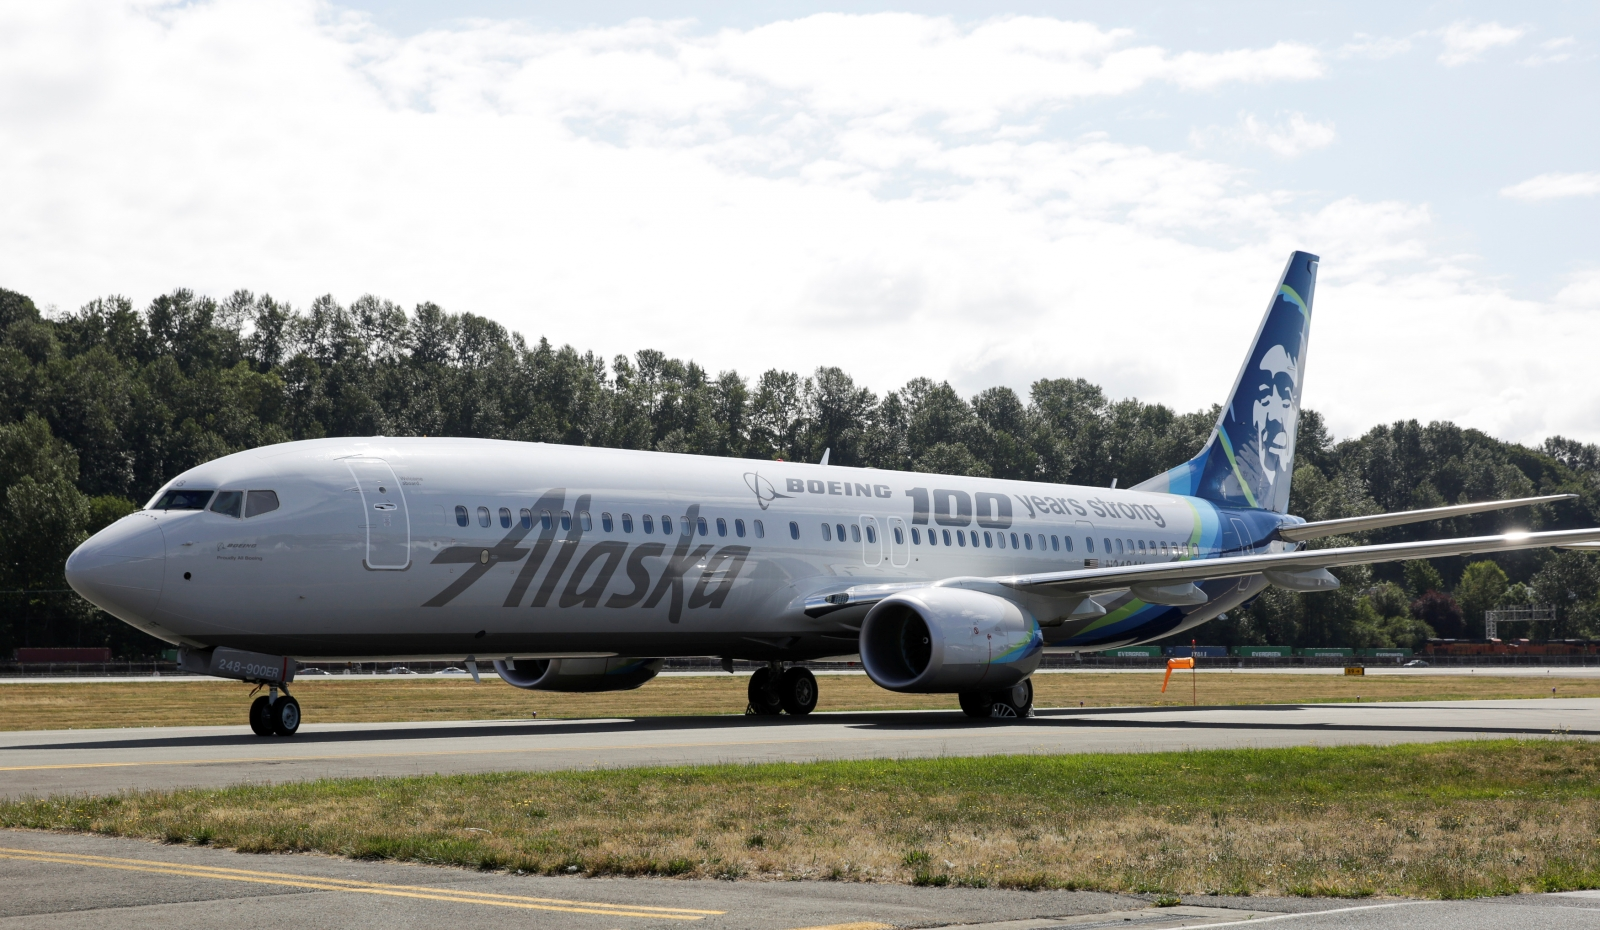 OR woman gets probation for in-flight licking and groping aboard Alaska Airlines